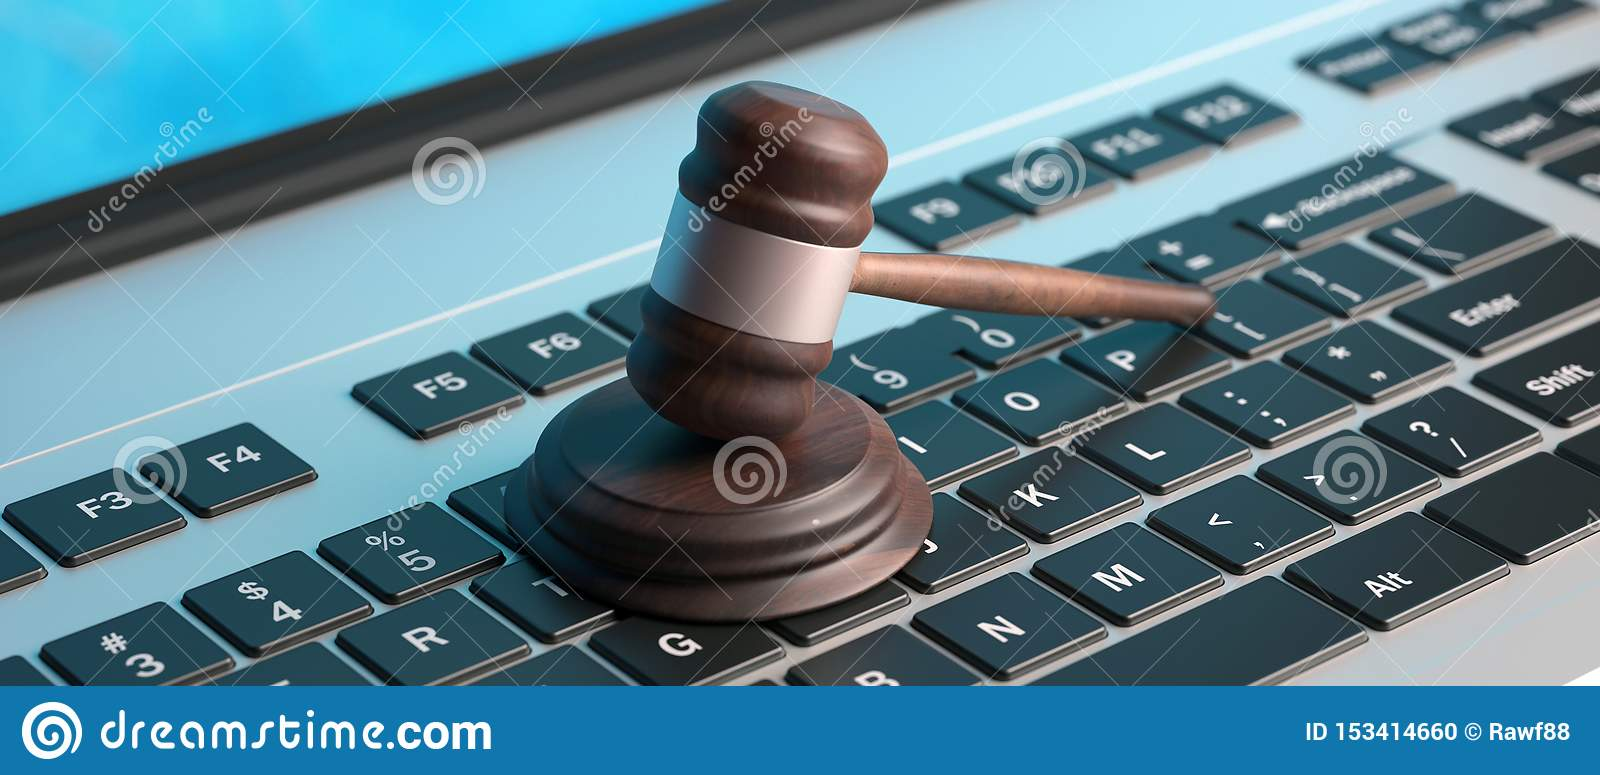 Online Auction Law Gavel On Computer Keyboard Banner 3d Illustration Stock Illustration Illustration Of Data Background 153414660